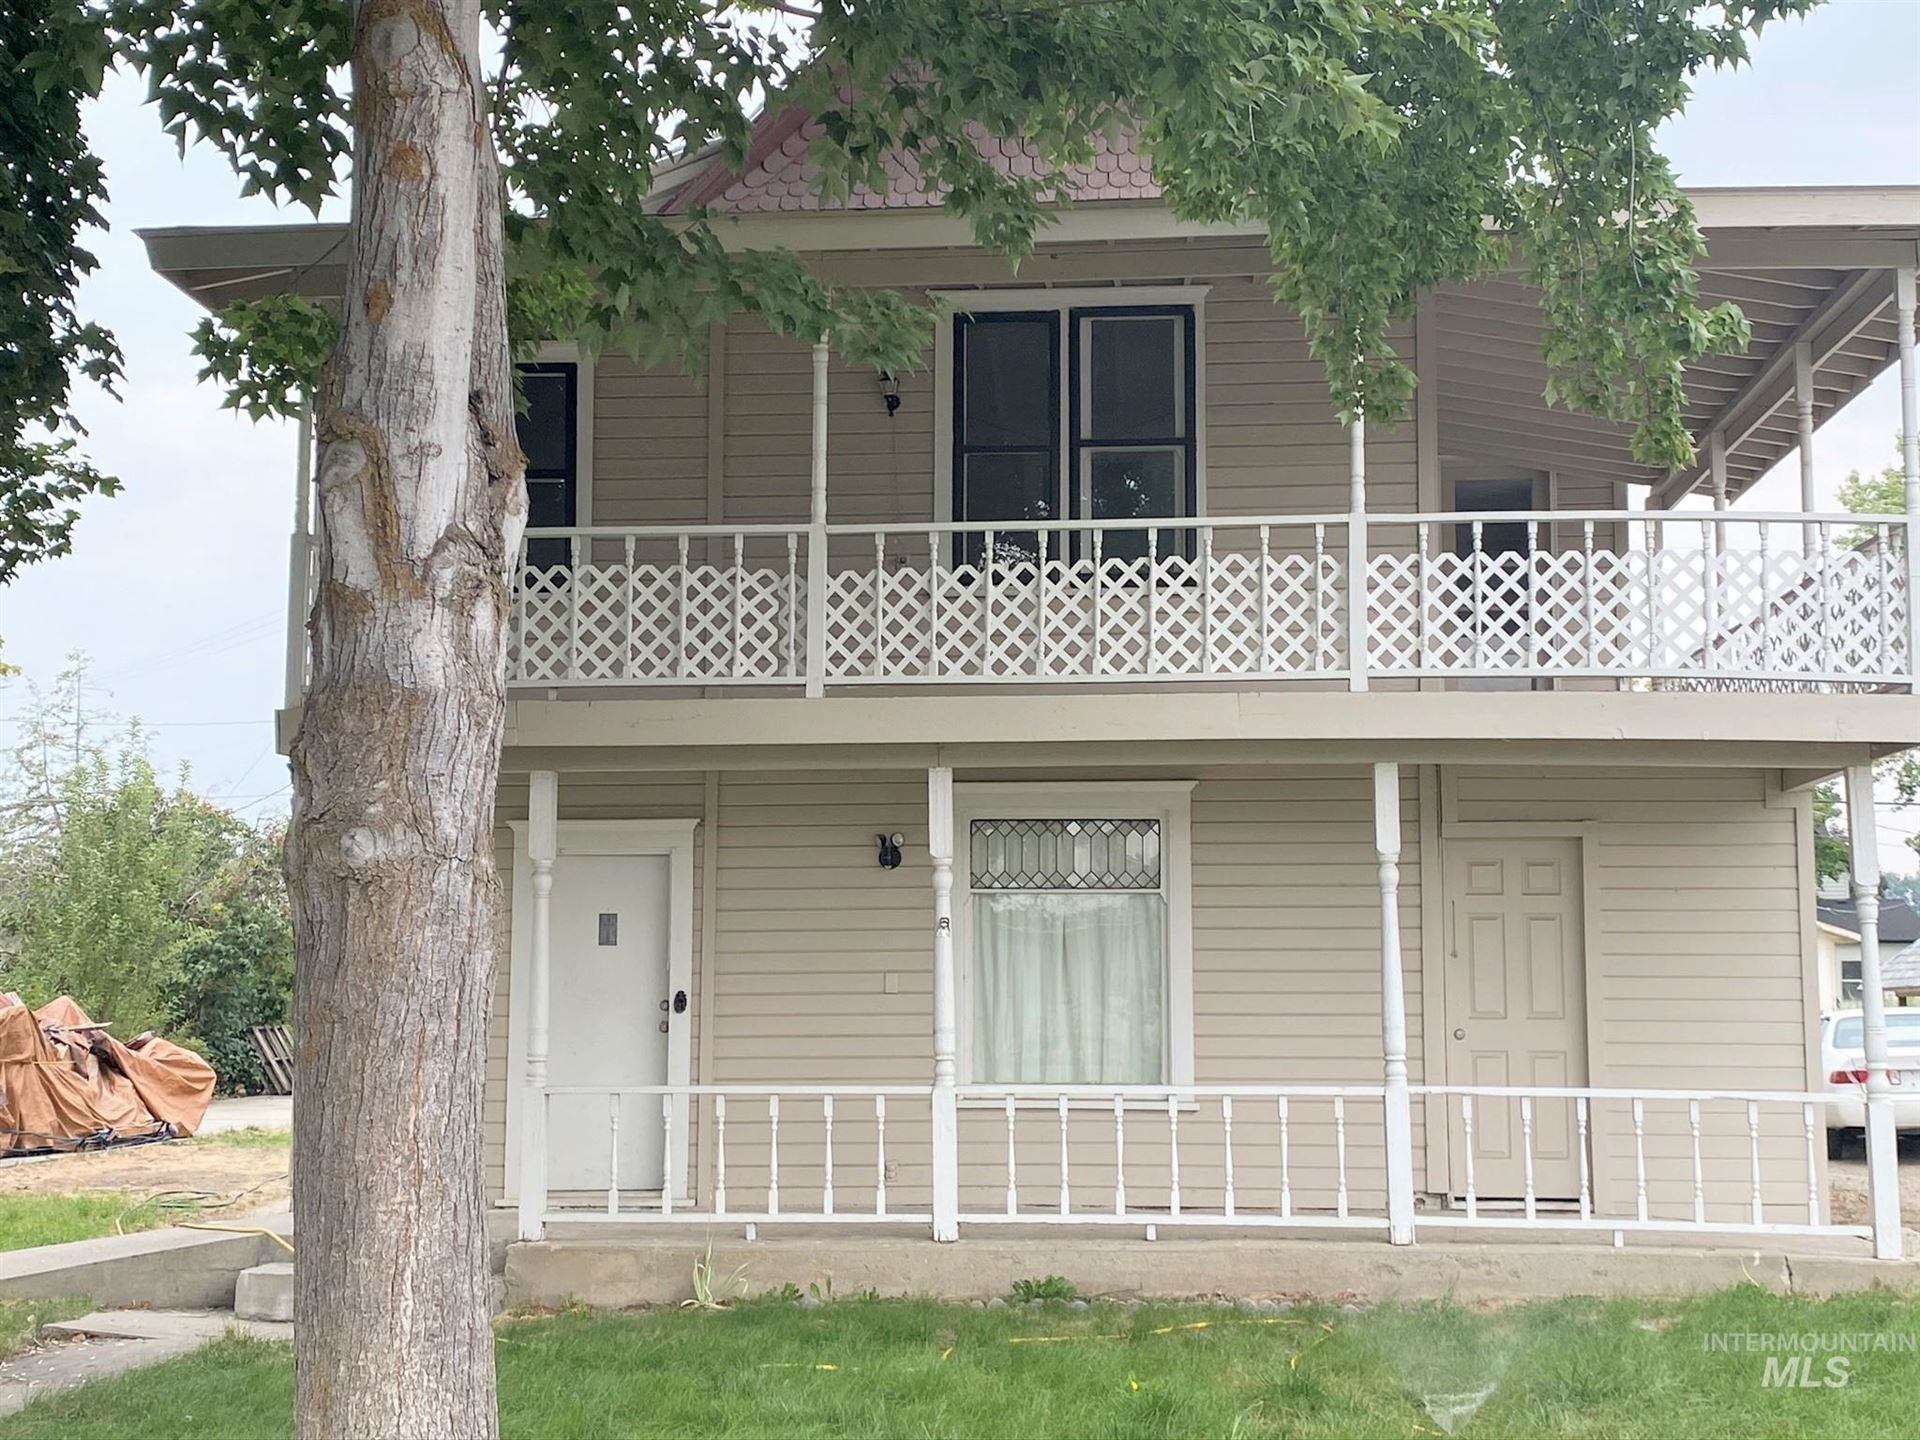 Photo of 1007 1st Ave S, Payette, ID 83661 (MLS # 98818750)